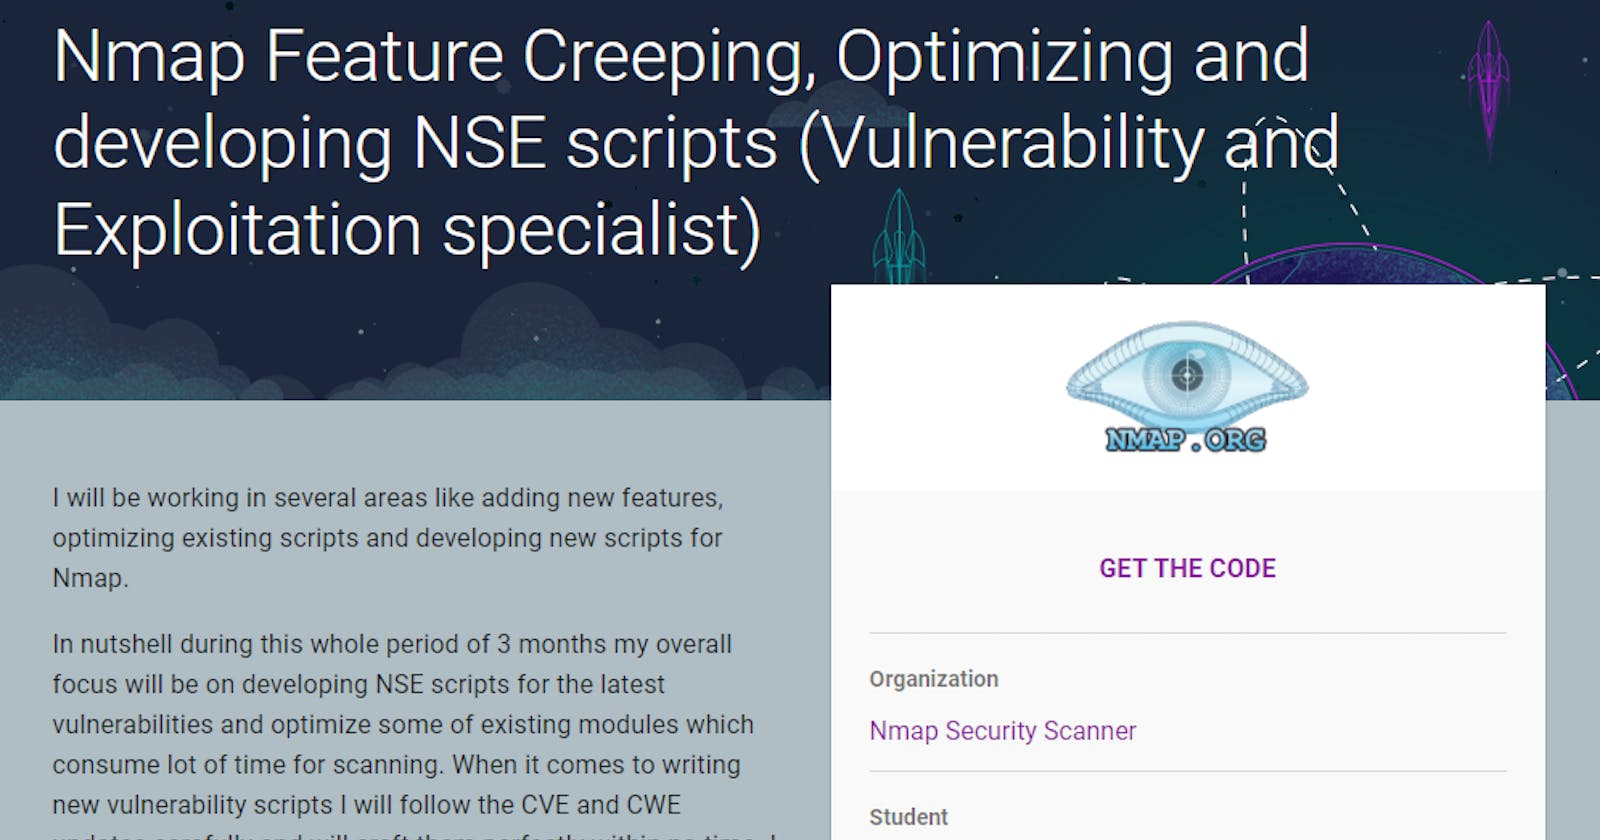 GSOC 2017 with Nmap Security Scanner